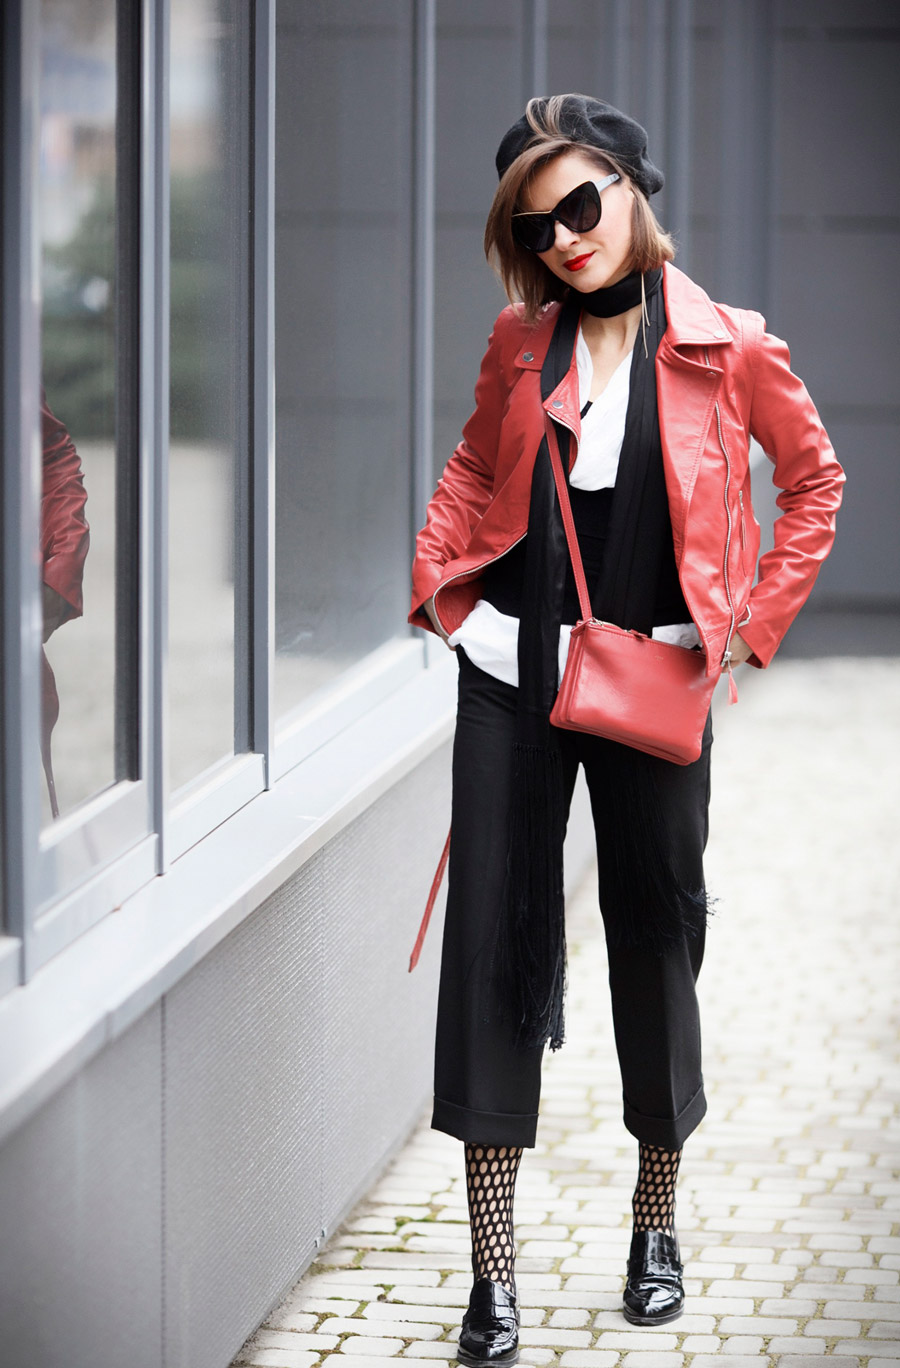 red biker jacket outfits, red moto jacket outfits, fishnet tights outfits, Parisian Chic style outfit ideas,